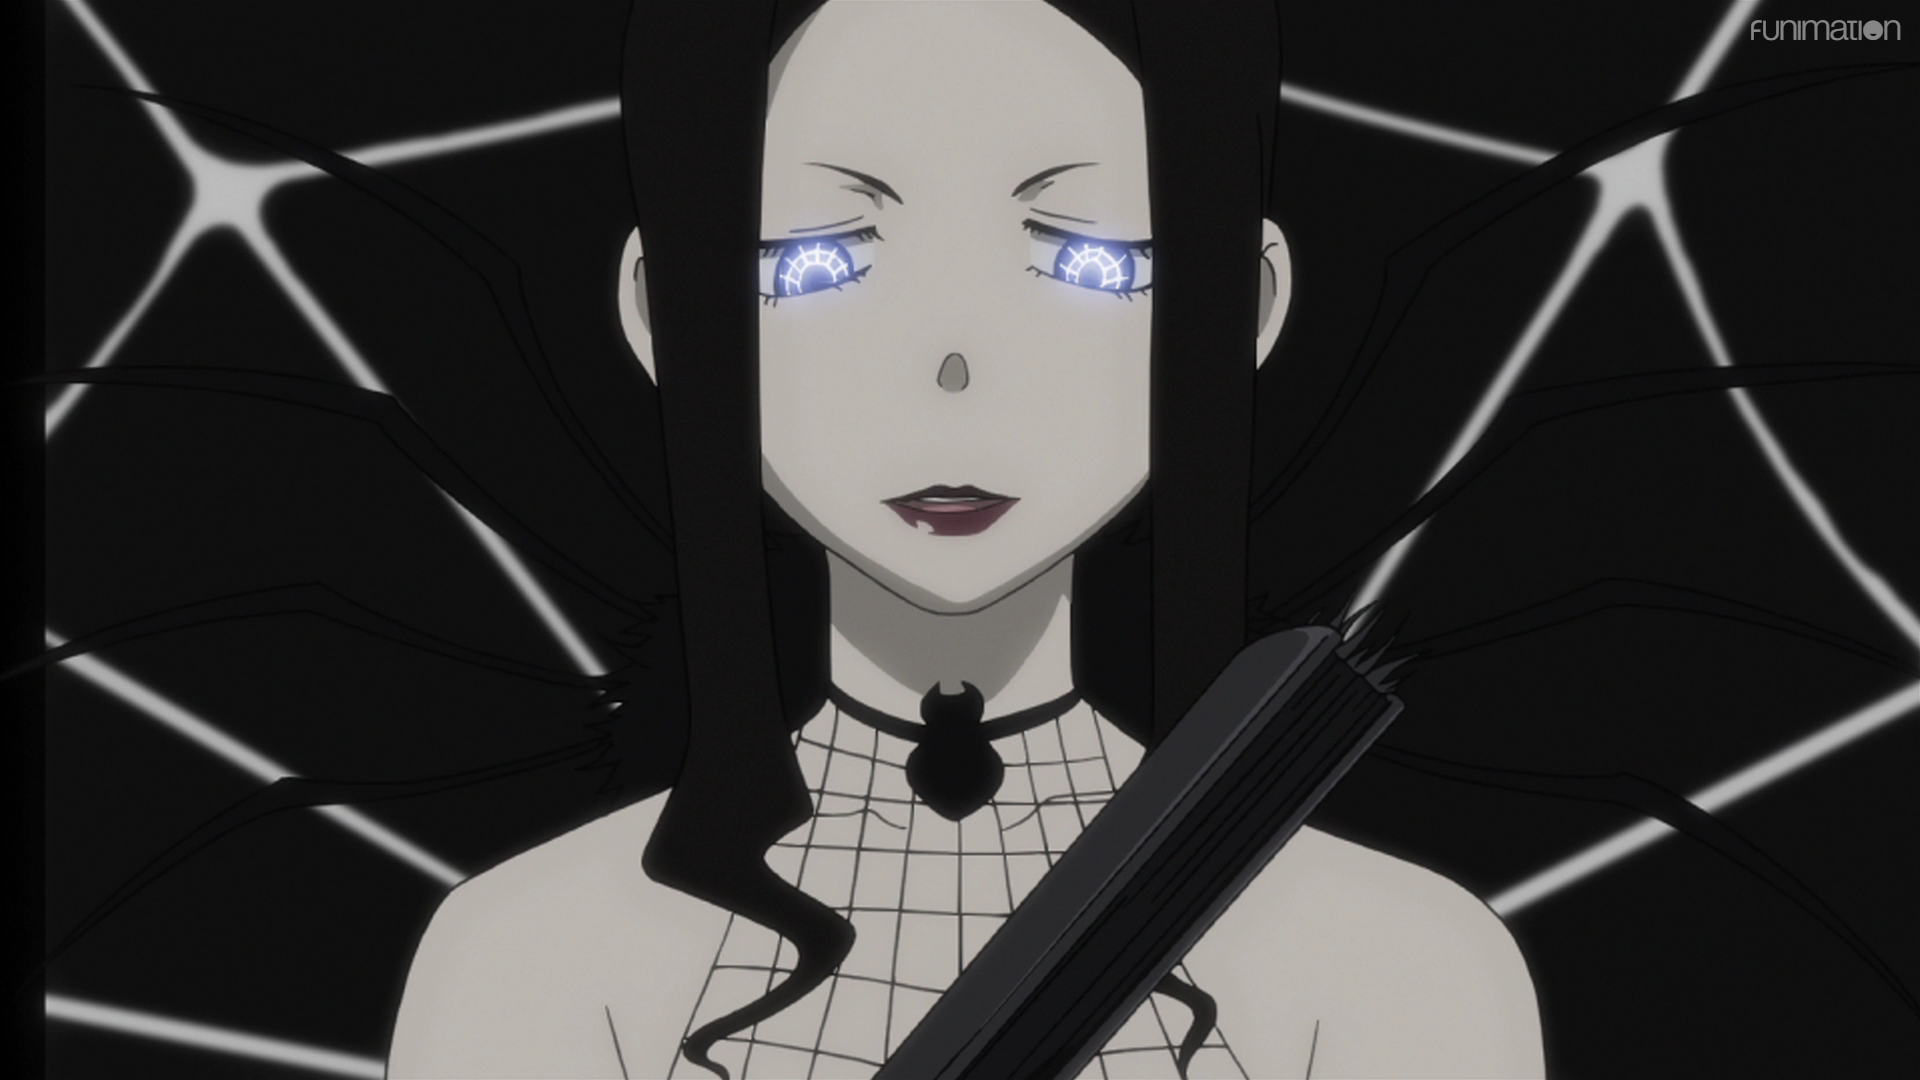 Arachne Gorgon's irises shine with a glowing, spiderweb pattern in a scene from the Soul Eater TV anime.